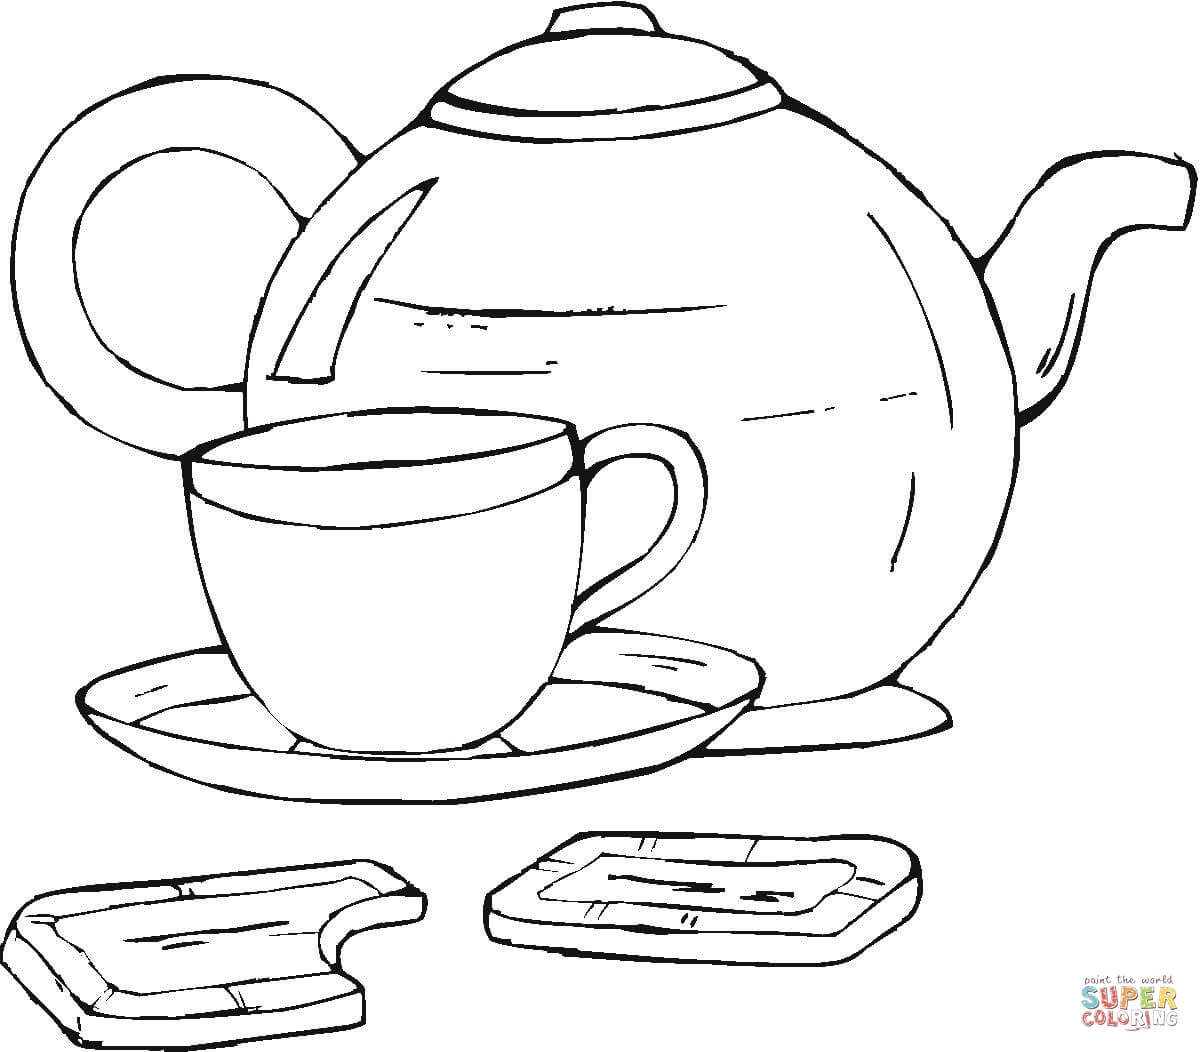 This is a photo of Mesmerizing Teacup Coloring Pages